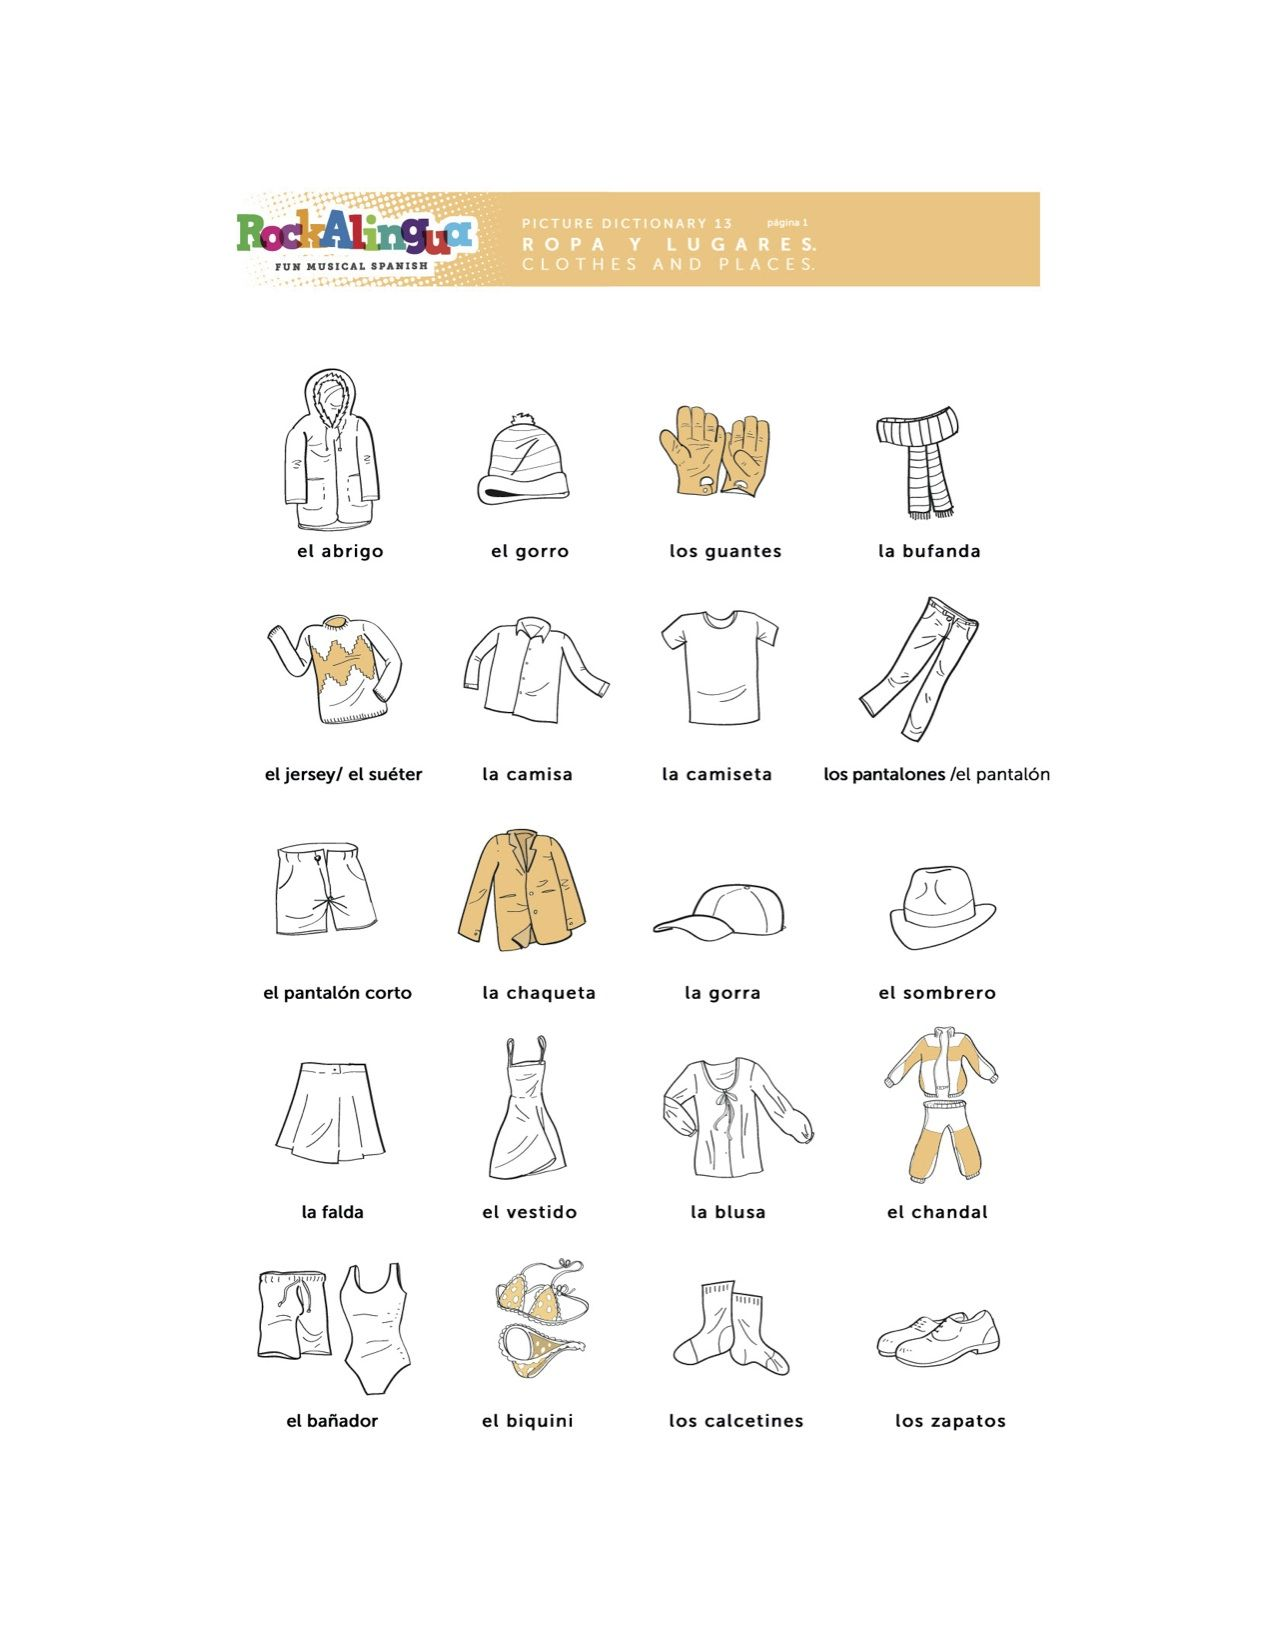 Worksheets Elementary Spanish Worksheets spanish clothing worksheet switchconf in worksheets images